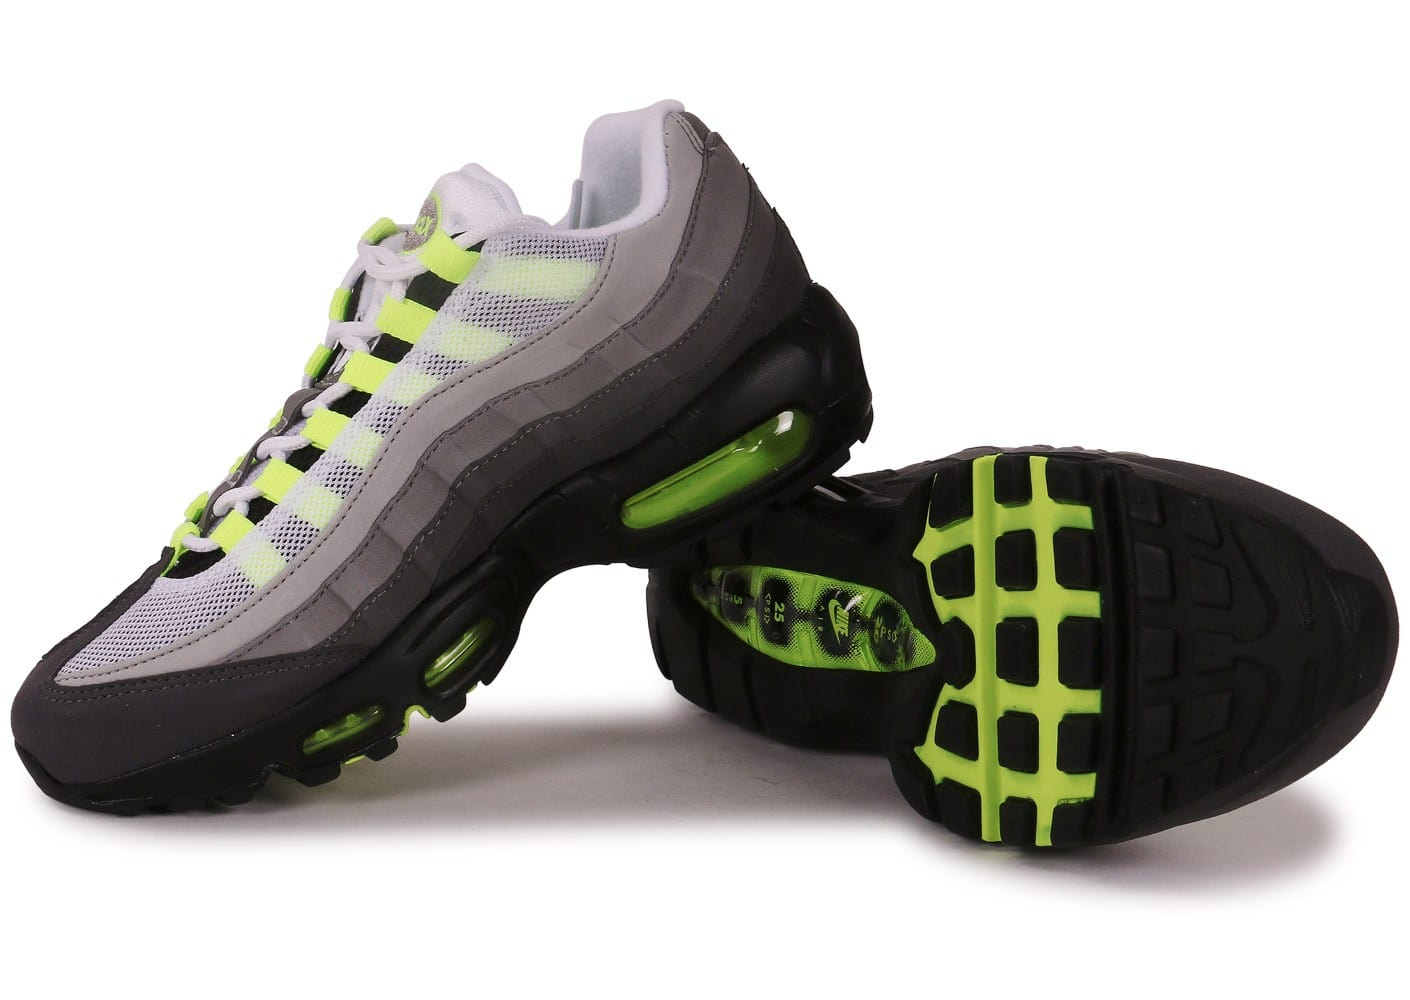 Nike Air Max 95 OG - Chaussures Baskets homme - Chausport